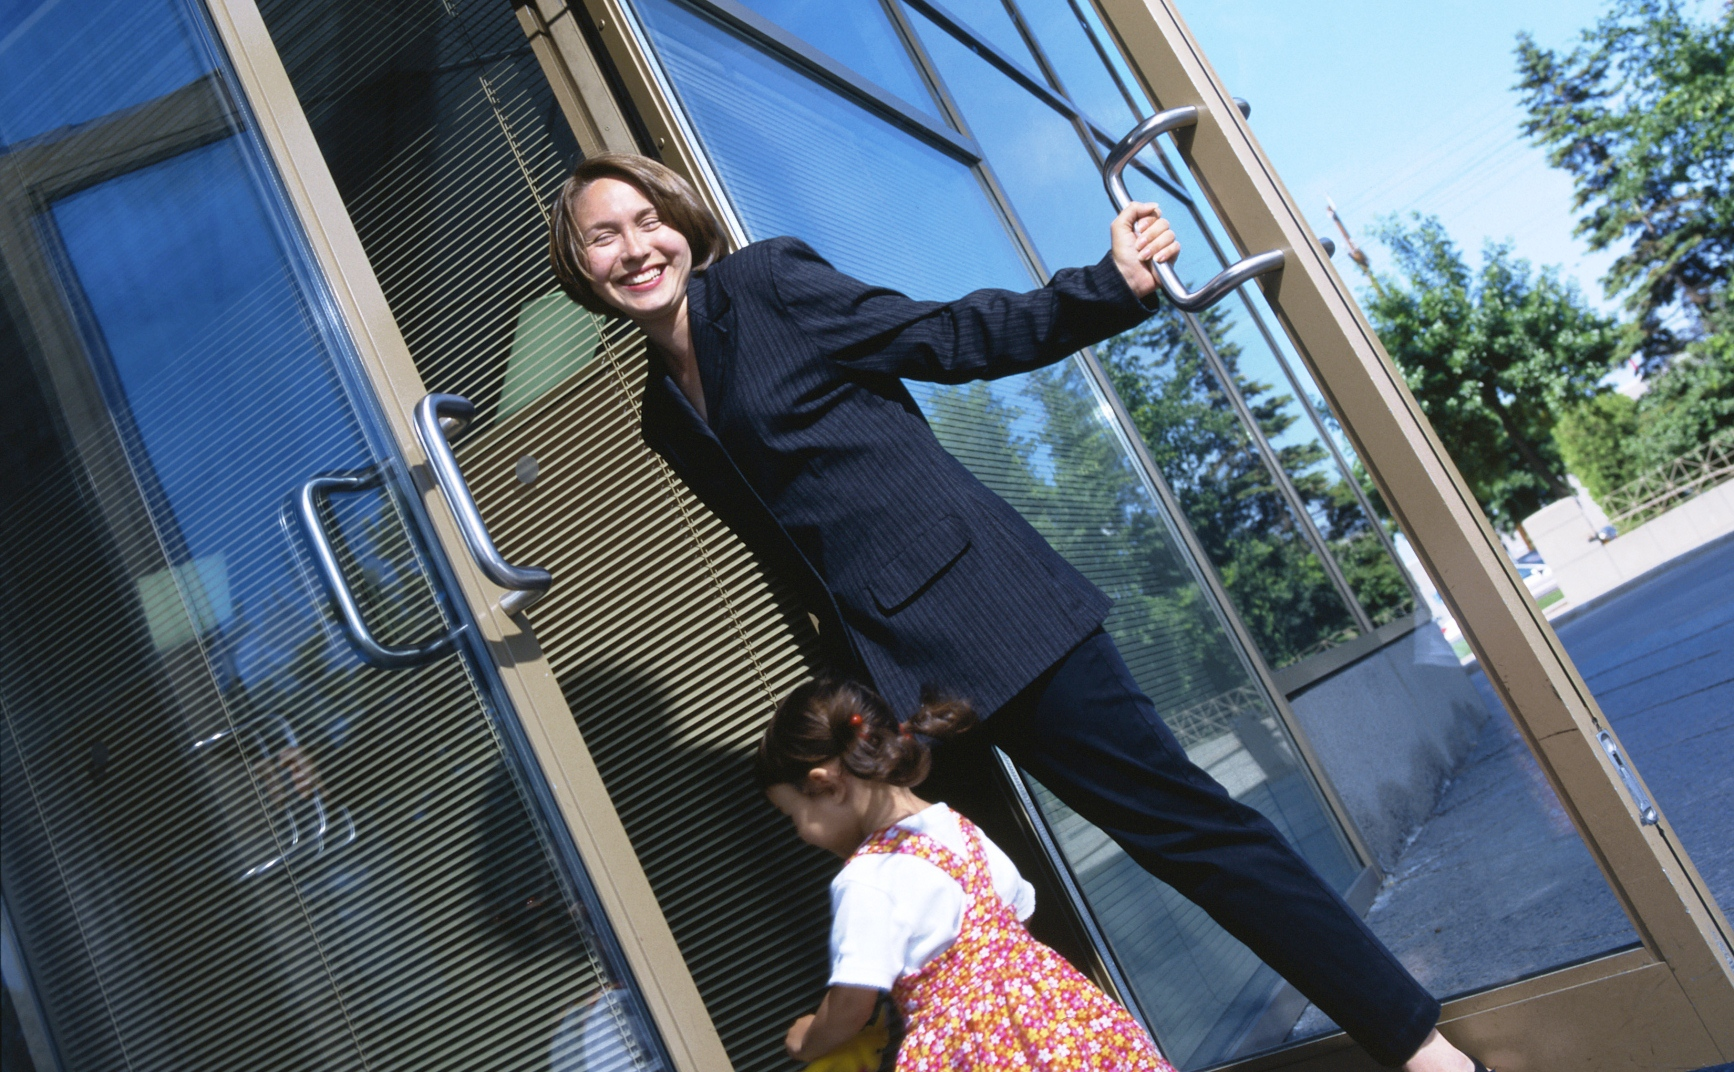 5 options for moms reentering the workforce